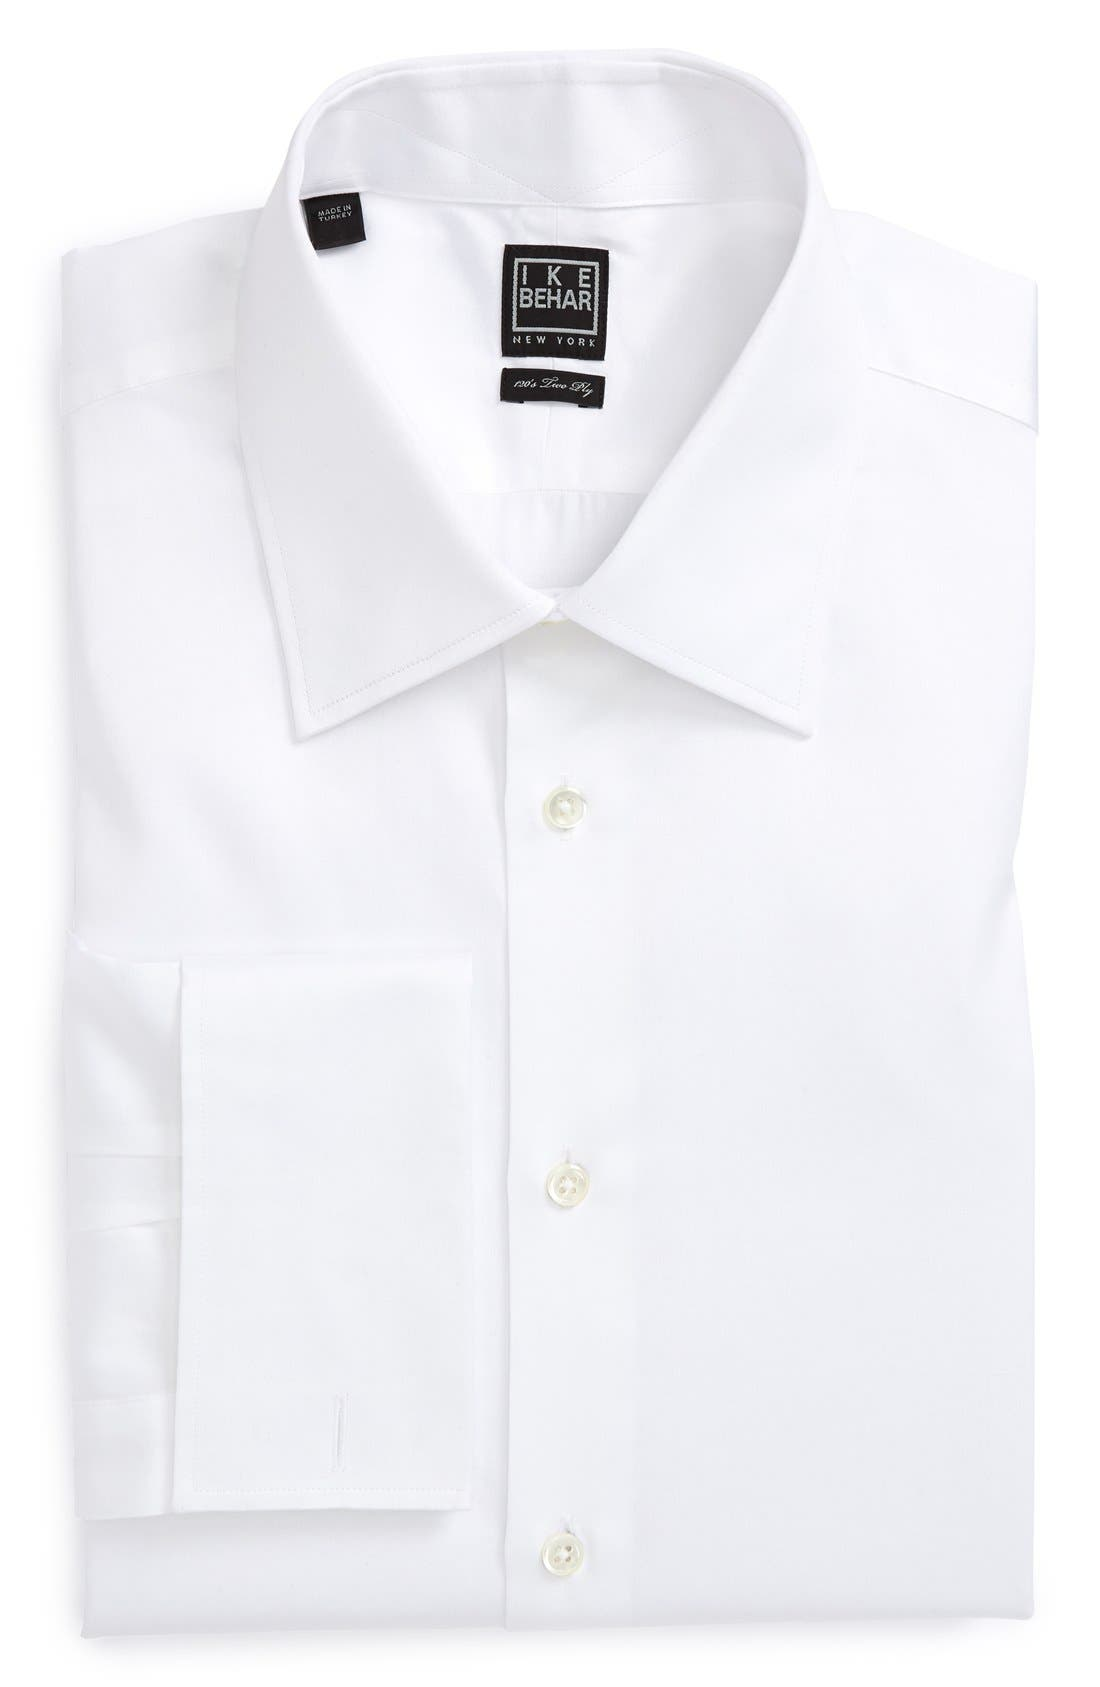 Alternate Image 1 Selected - Ike Behar Regular Fit Solid French Cuff Dress Shirt (Online Only)